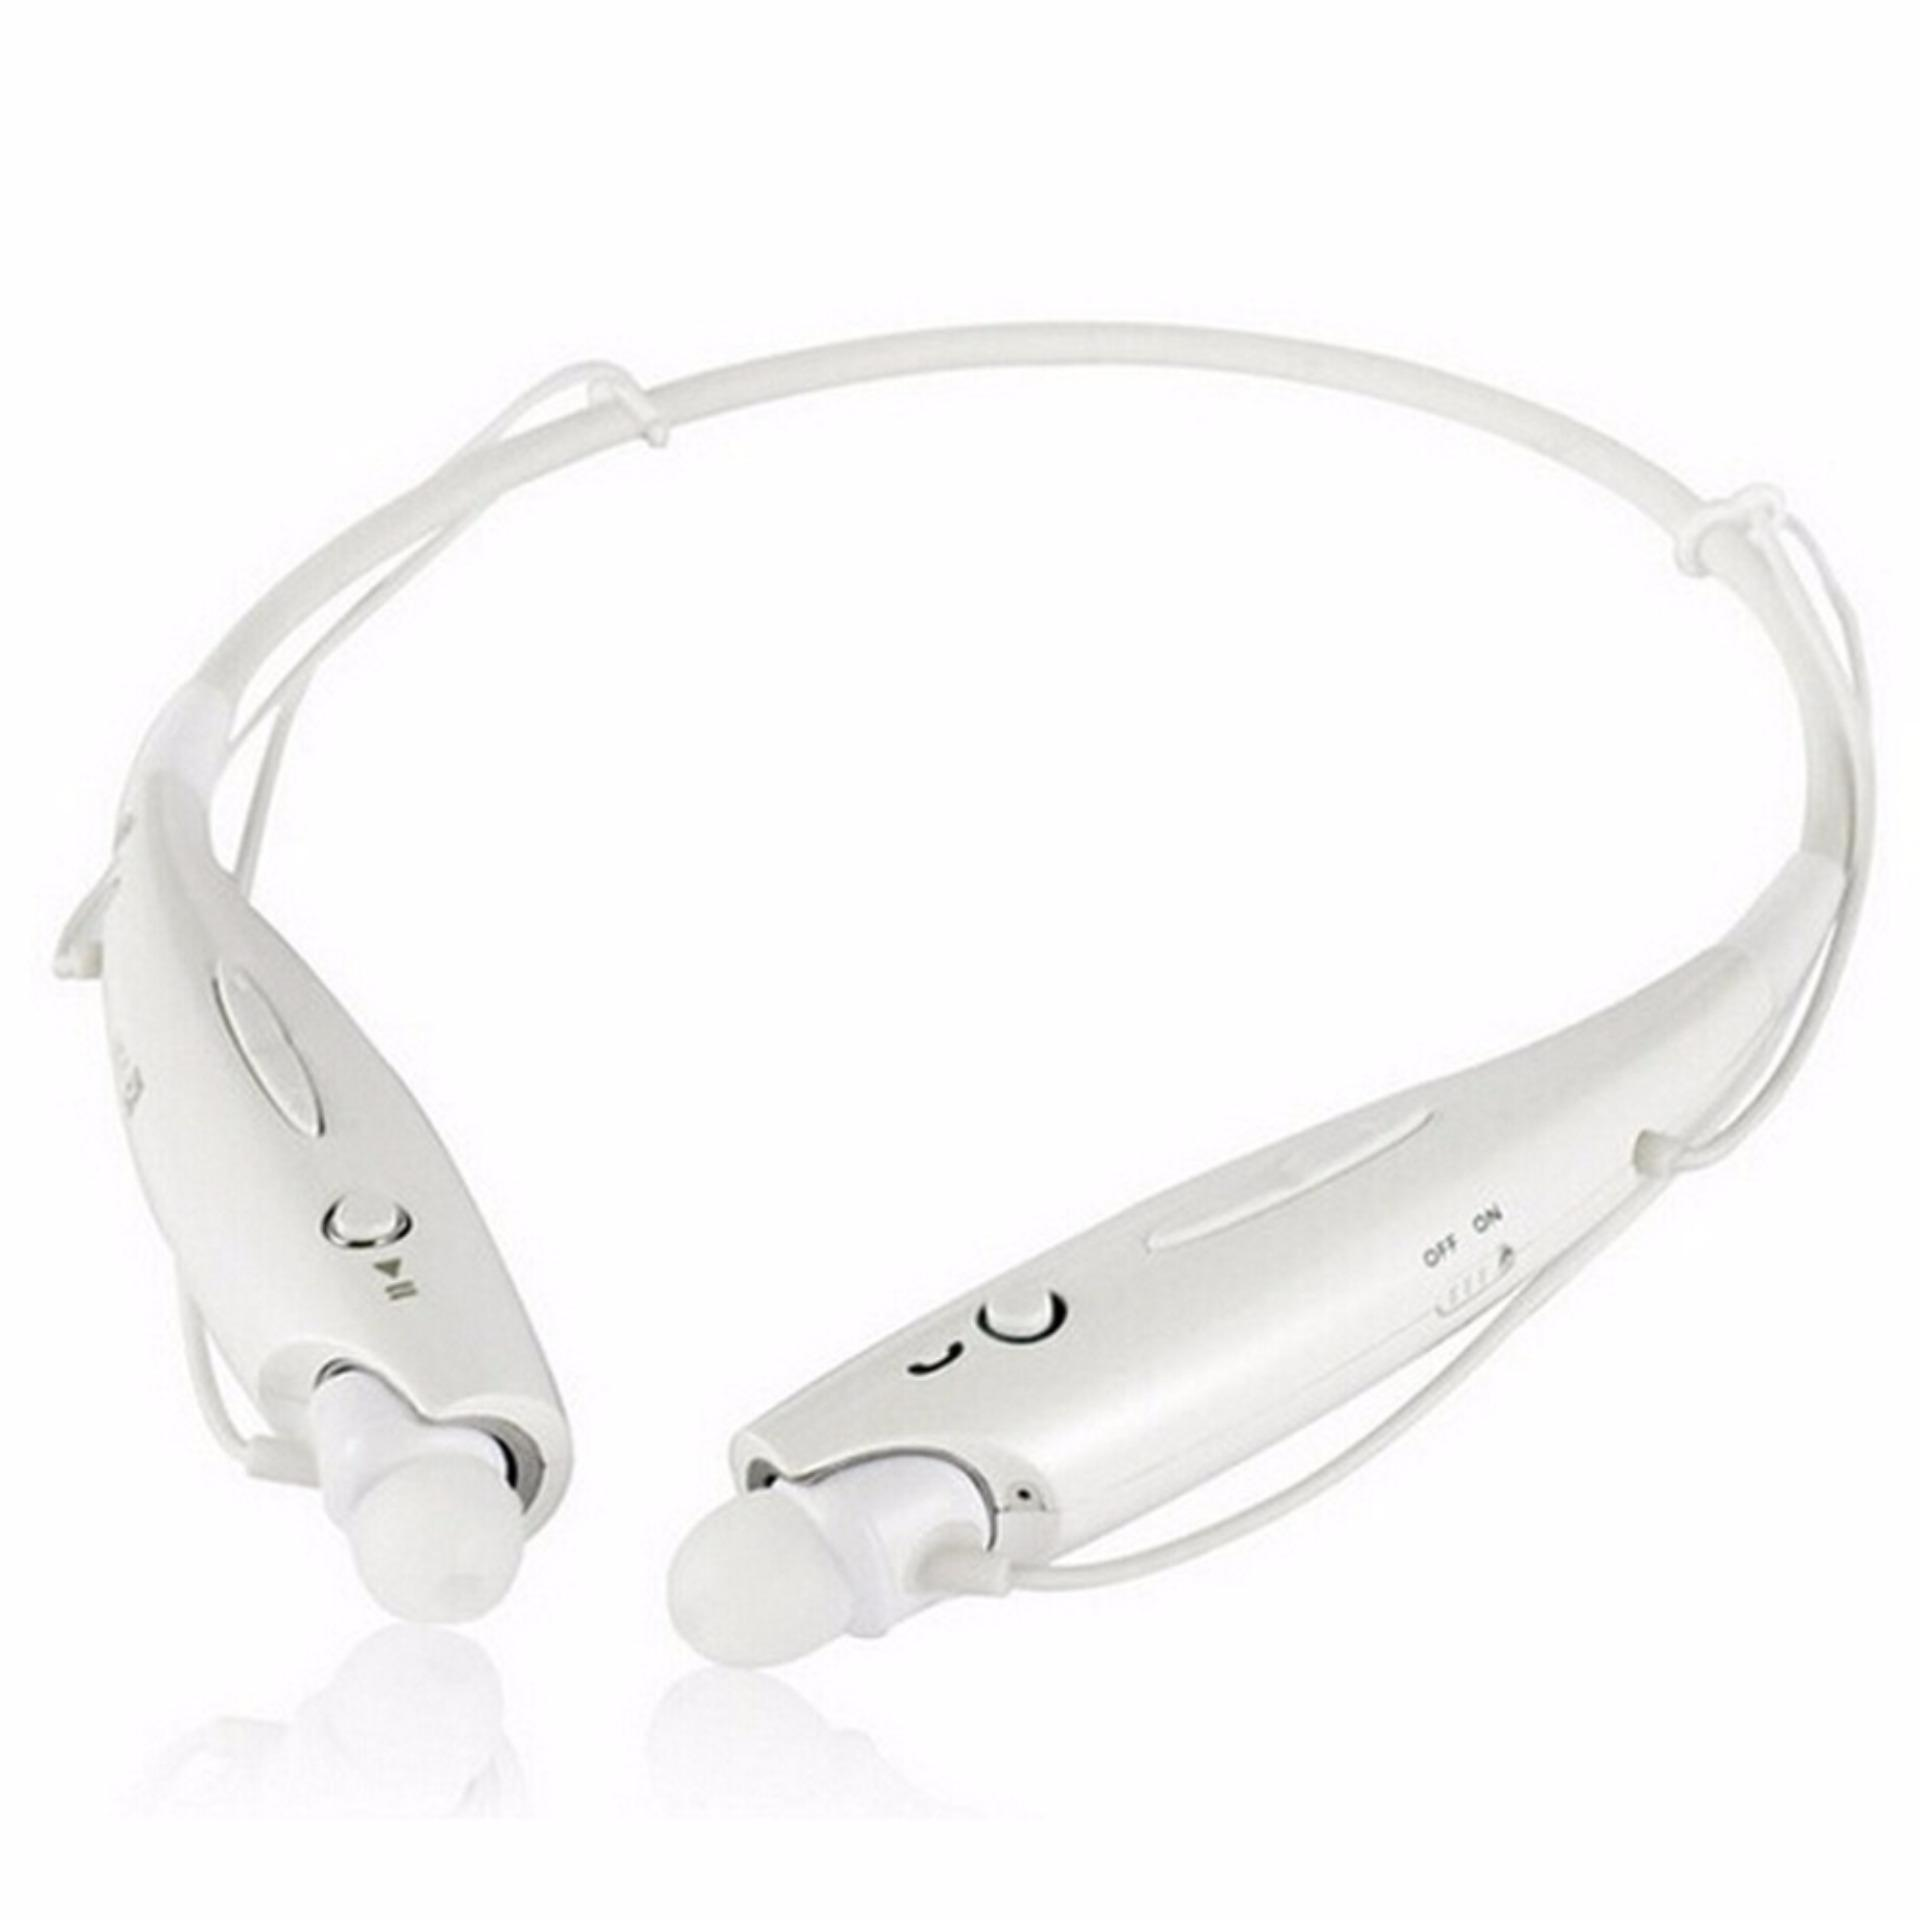 Dimana Beli Samsung Bluetooth Headset Two Channel Mp3 Music Headphone Hbs 730 Samsung